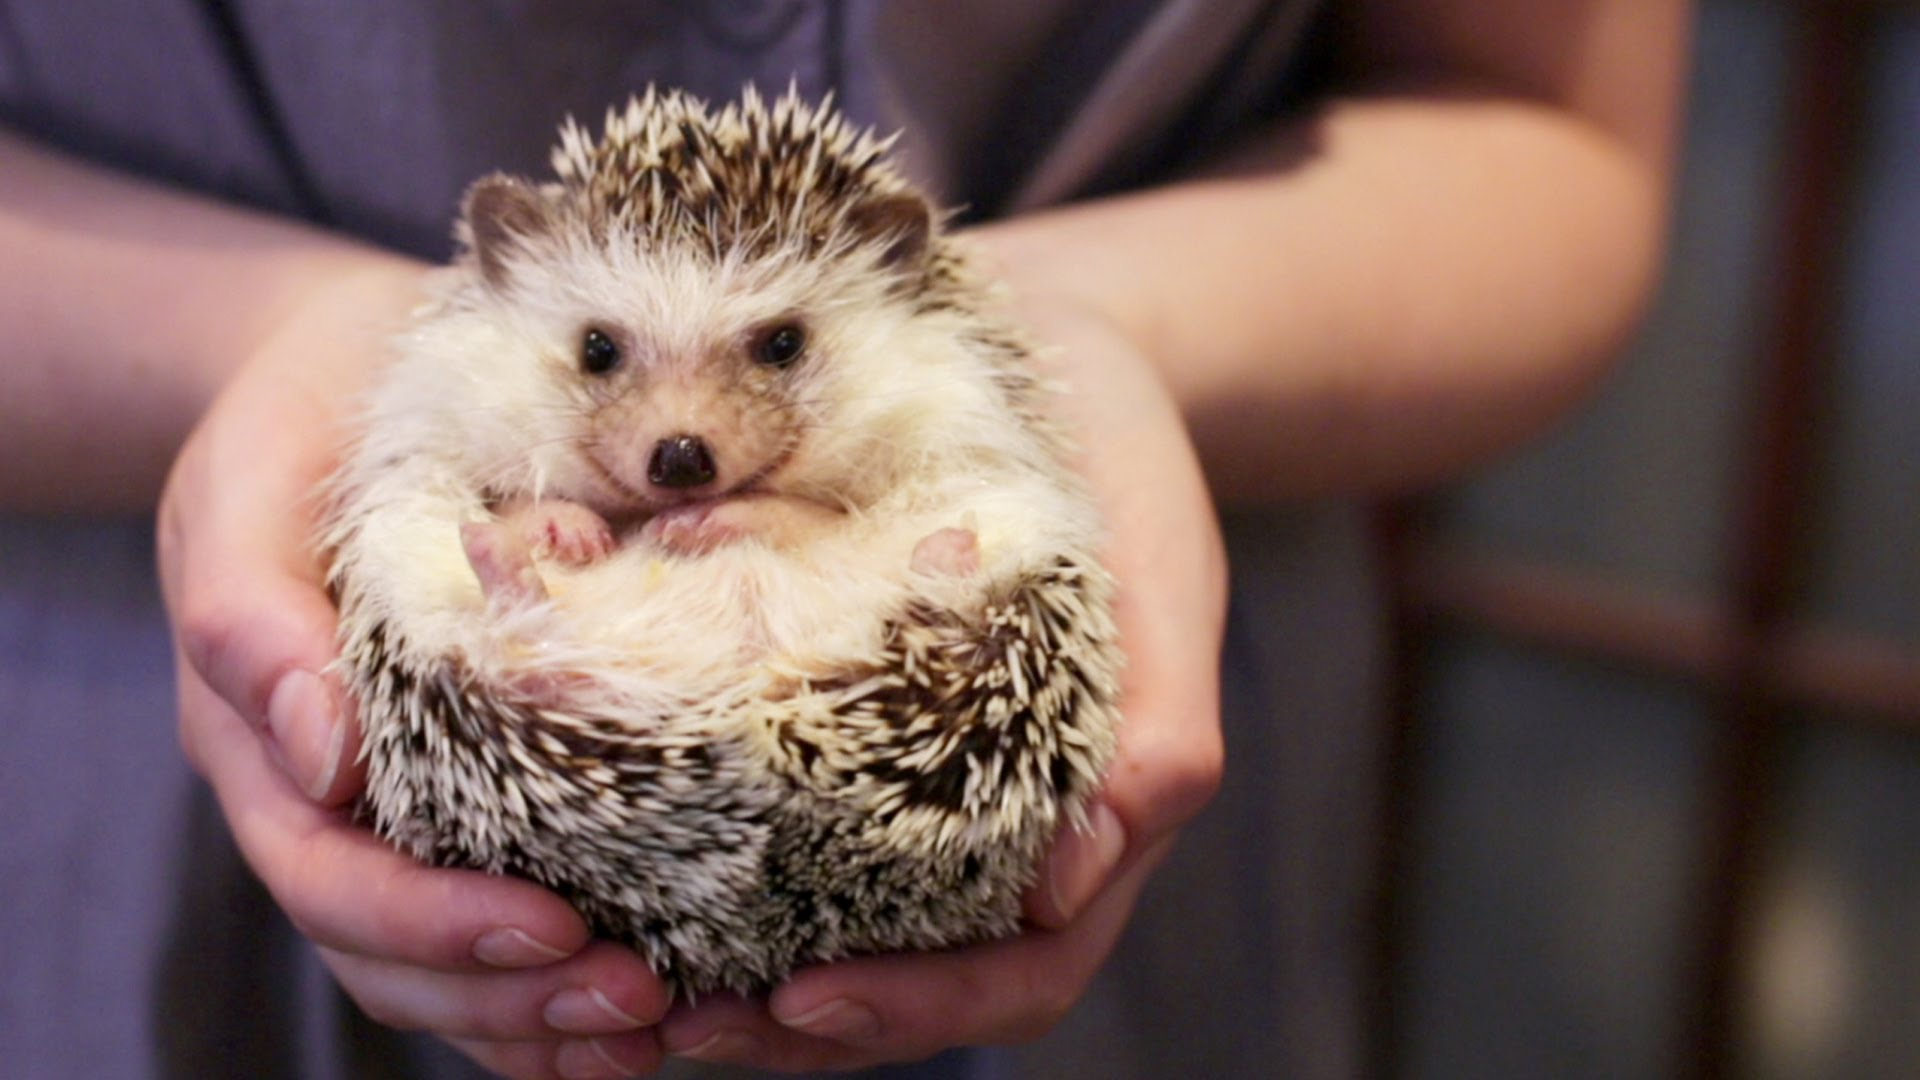 hedgehog - Copy